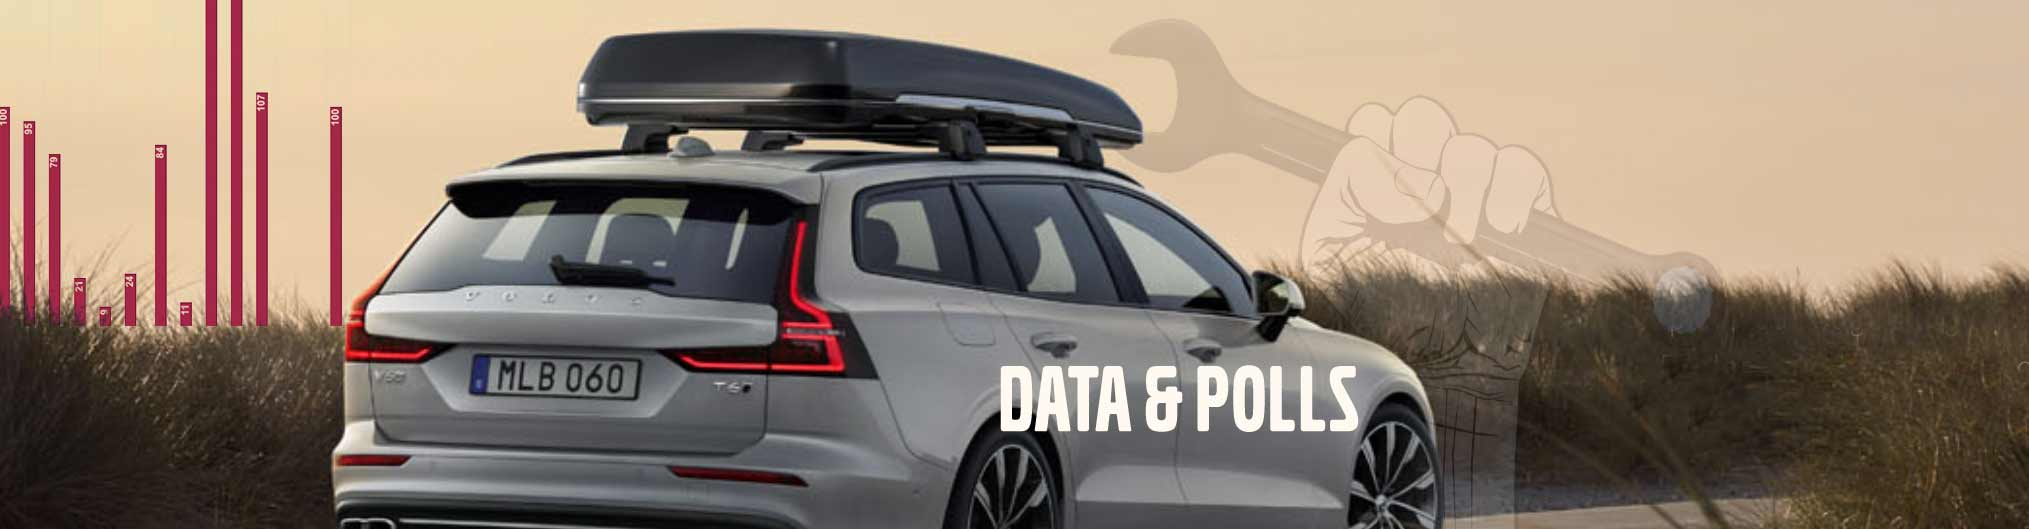 Volvo Ownership Data And Polls